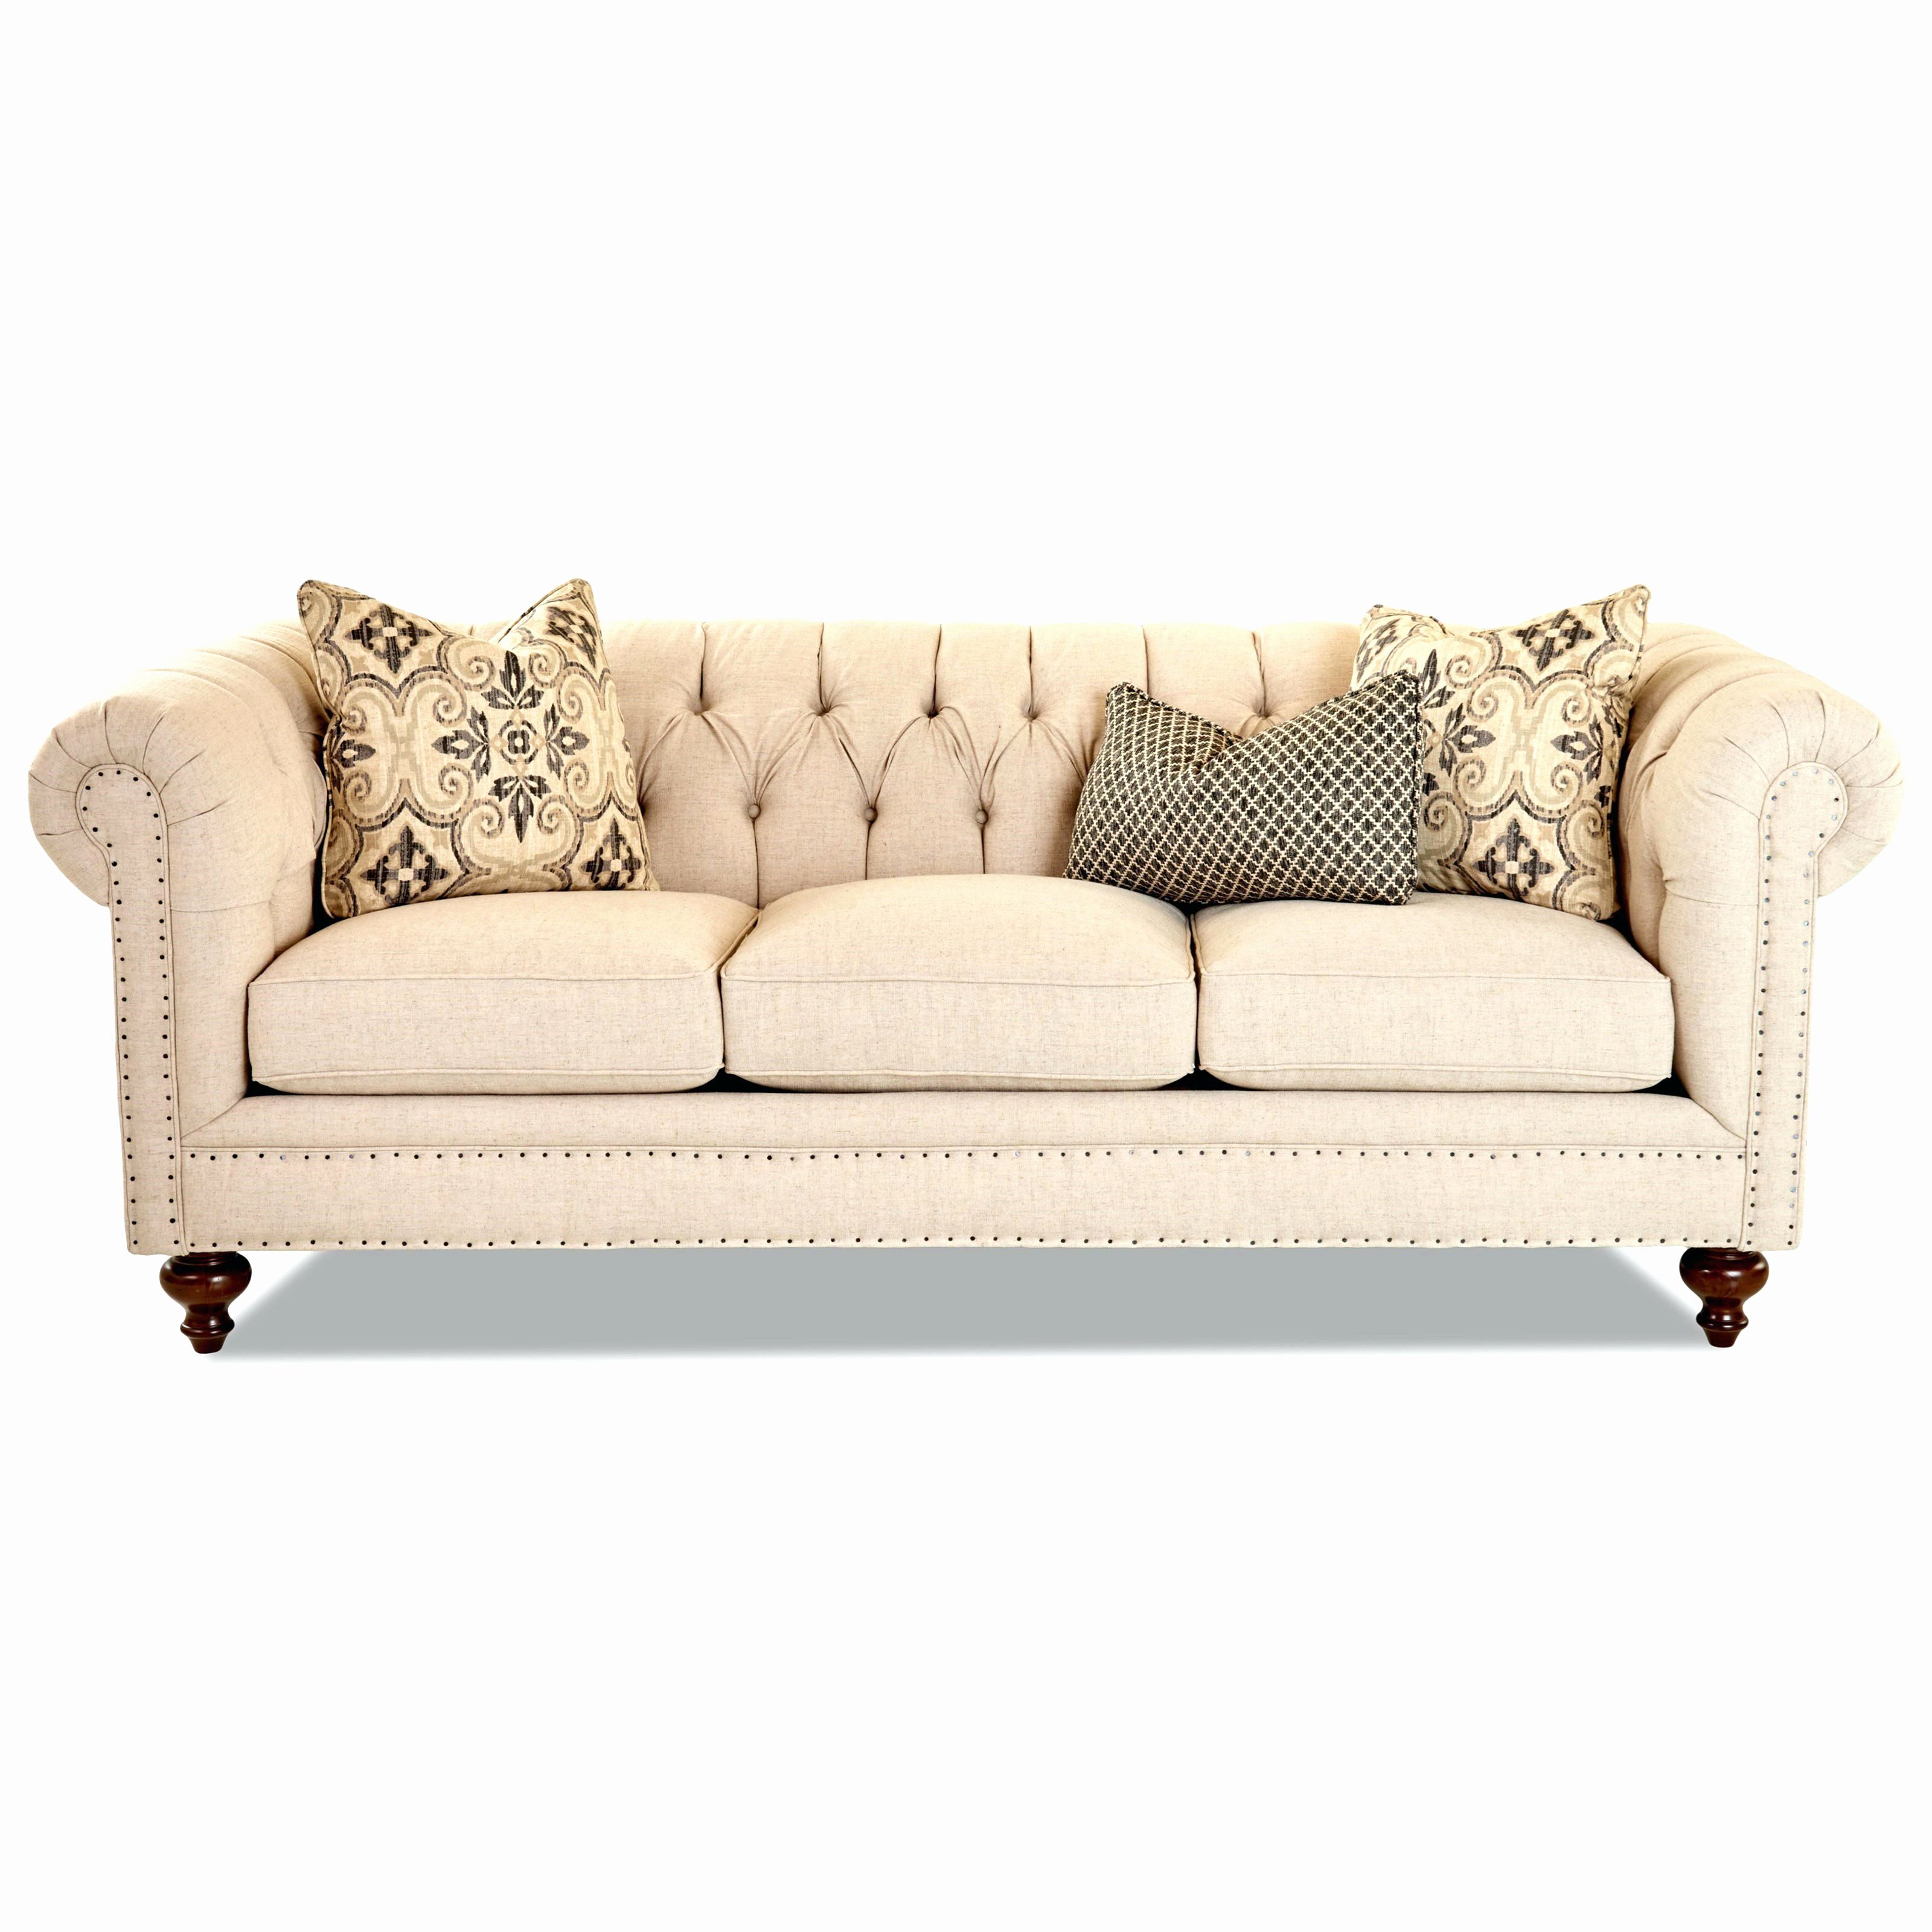 Elegant Sleeper Sofa With Air Mattress Picture Sleeper Sofa With